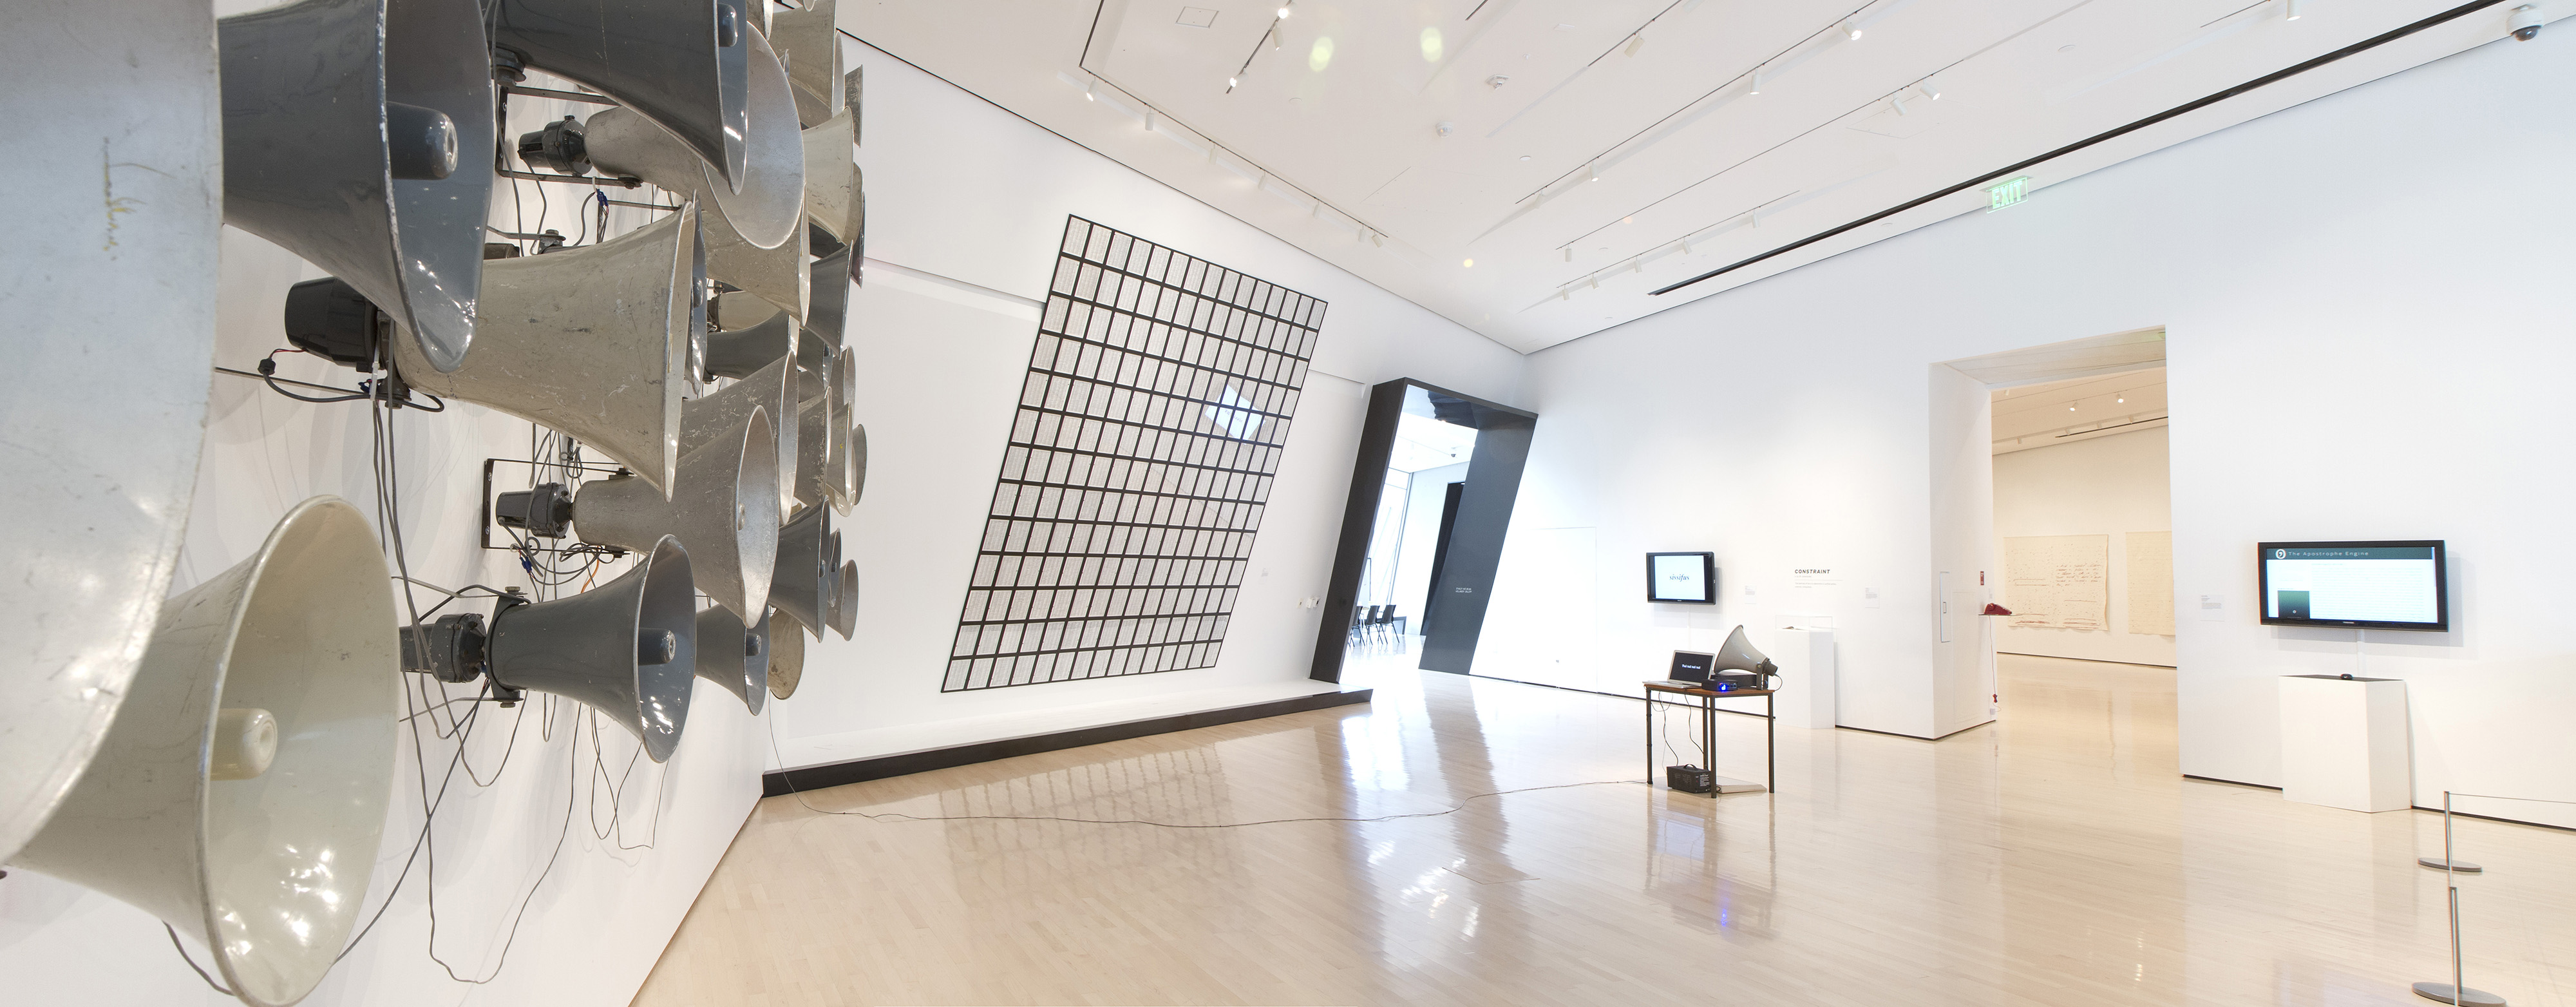 <i>Postscript: Writing After Conceptual Art</i>, installation view at the Eli and Edythe Broad Art Museum at Michigan State University, 2014. Photo: Eat Pomegranate Photography